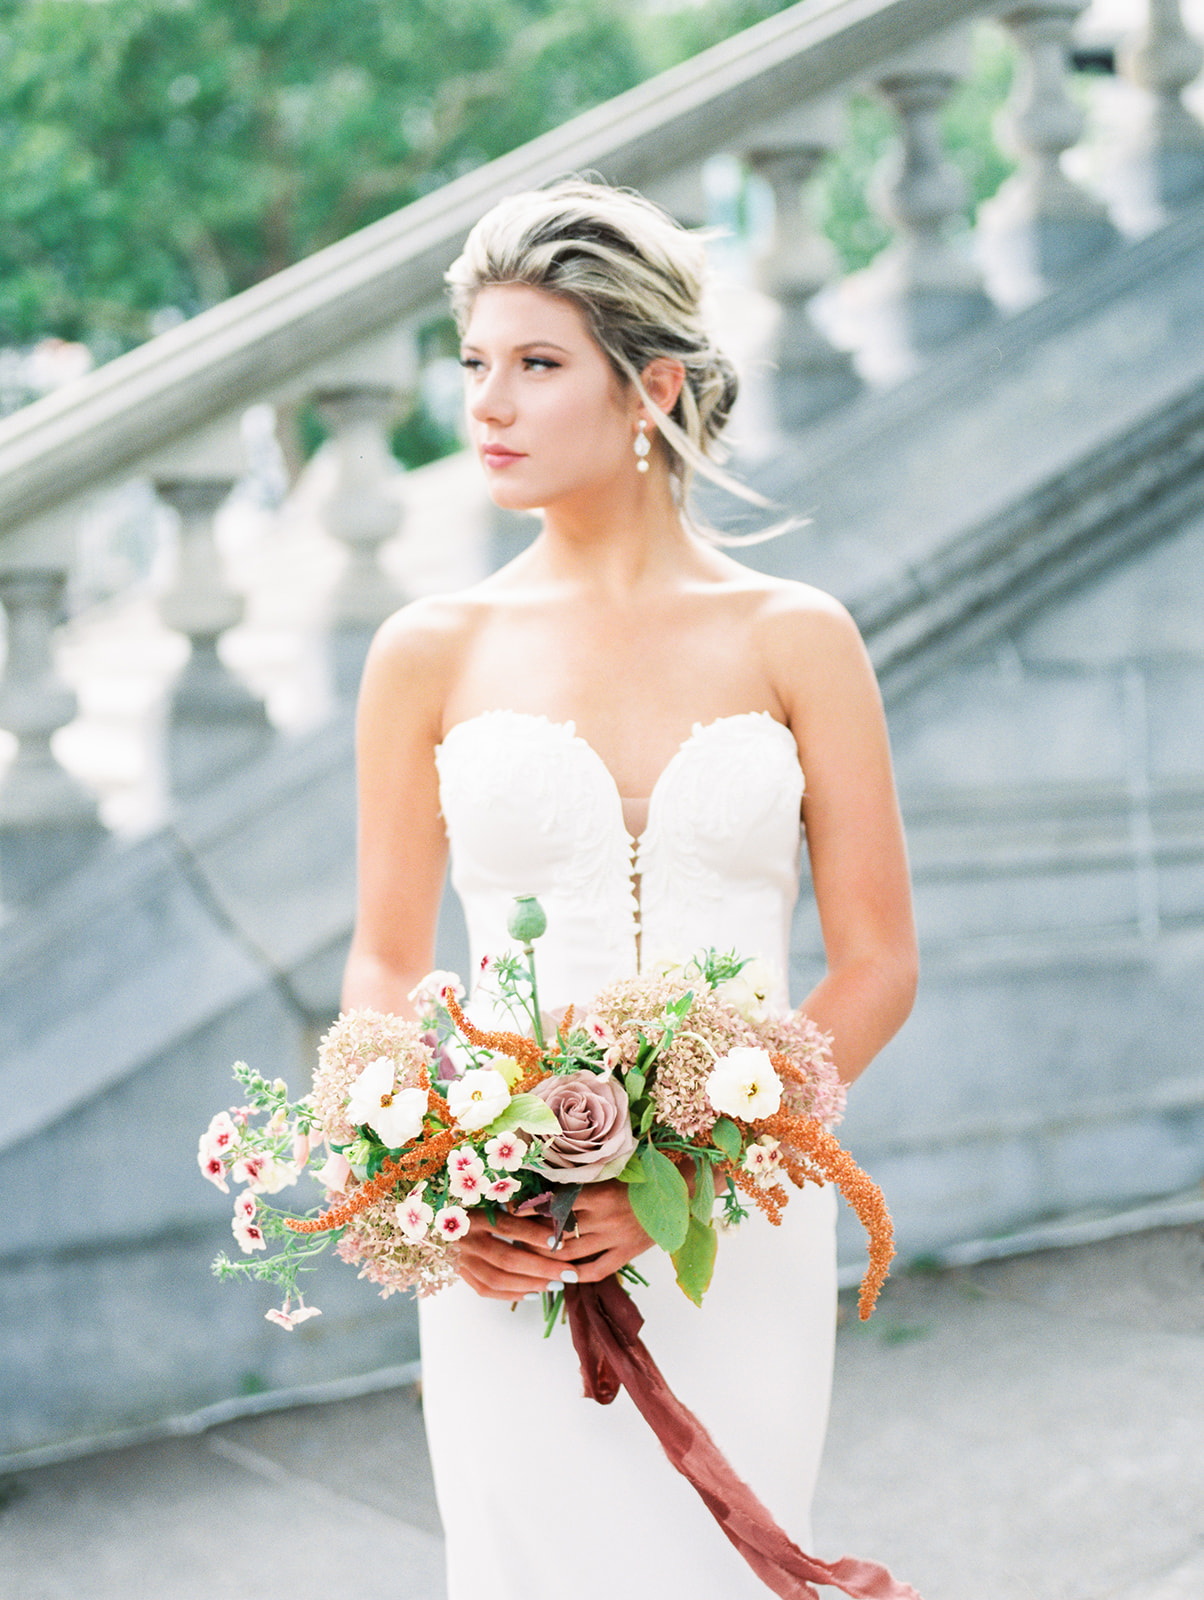 July Editorial with Angela_s Bridal by Michelle Lange Photography-100.jpg